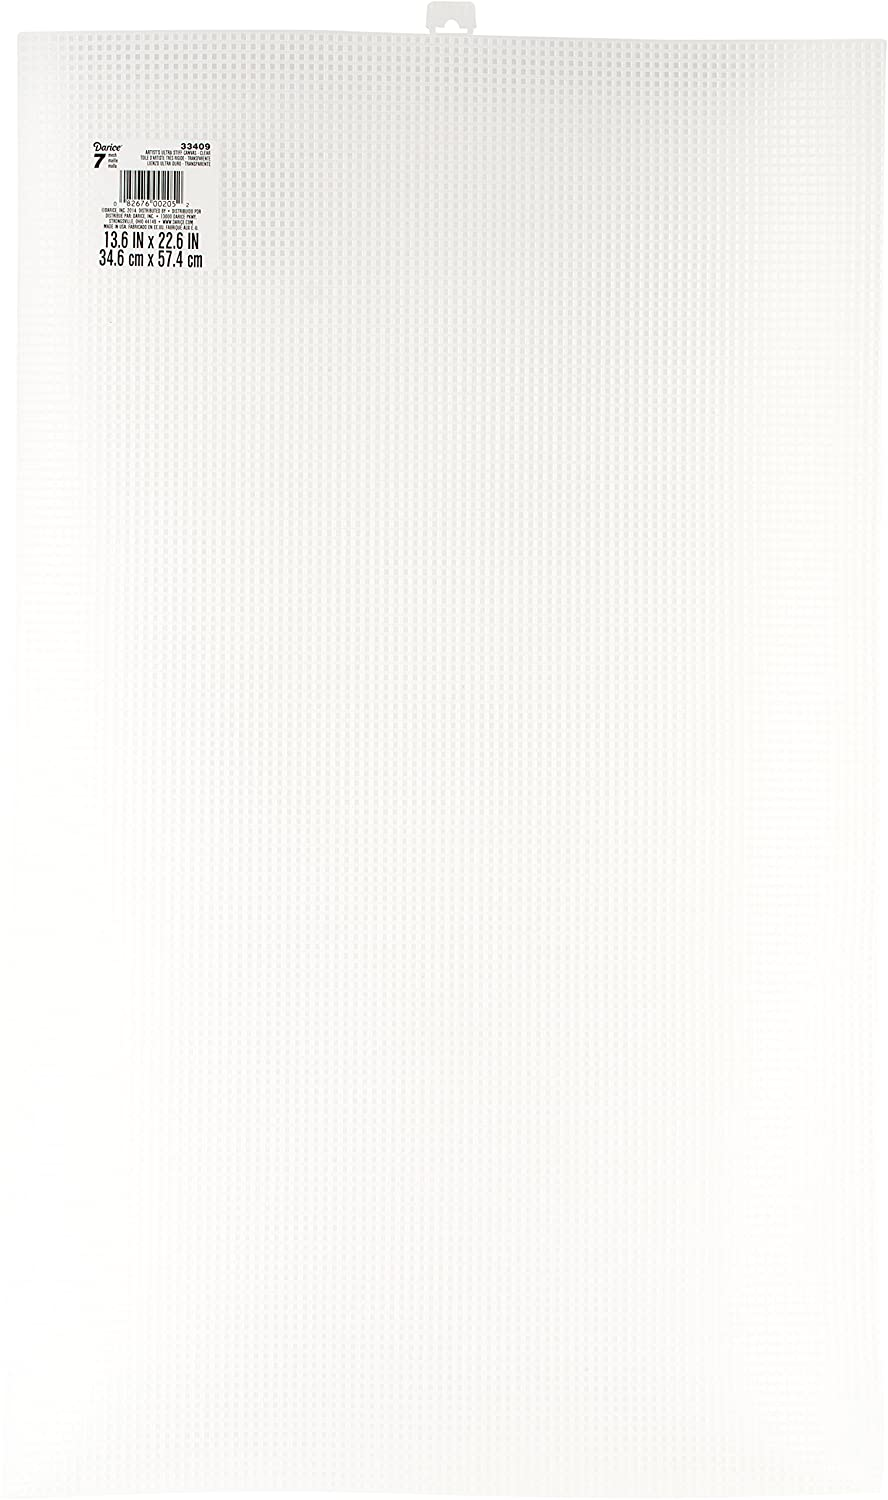 Darice Ultra-Stiff Plastic Canvas, Clear, 10.5 x 13.5-Inch 33418-1